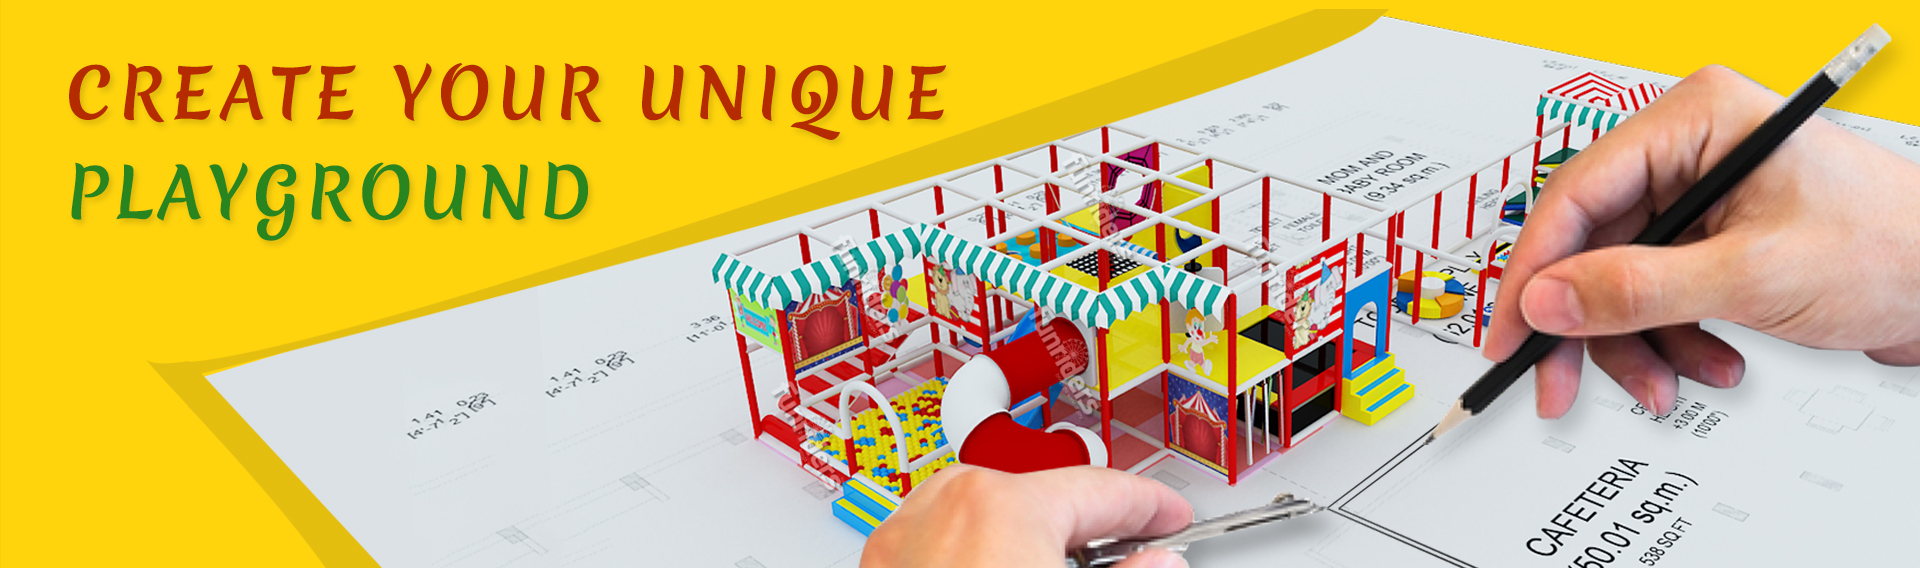 HOW TO START AN INDOOR PLAYGROUND BUSINESS?